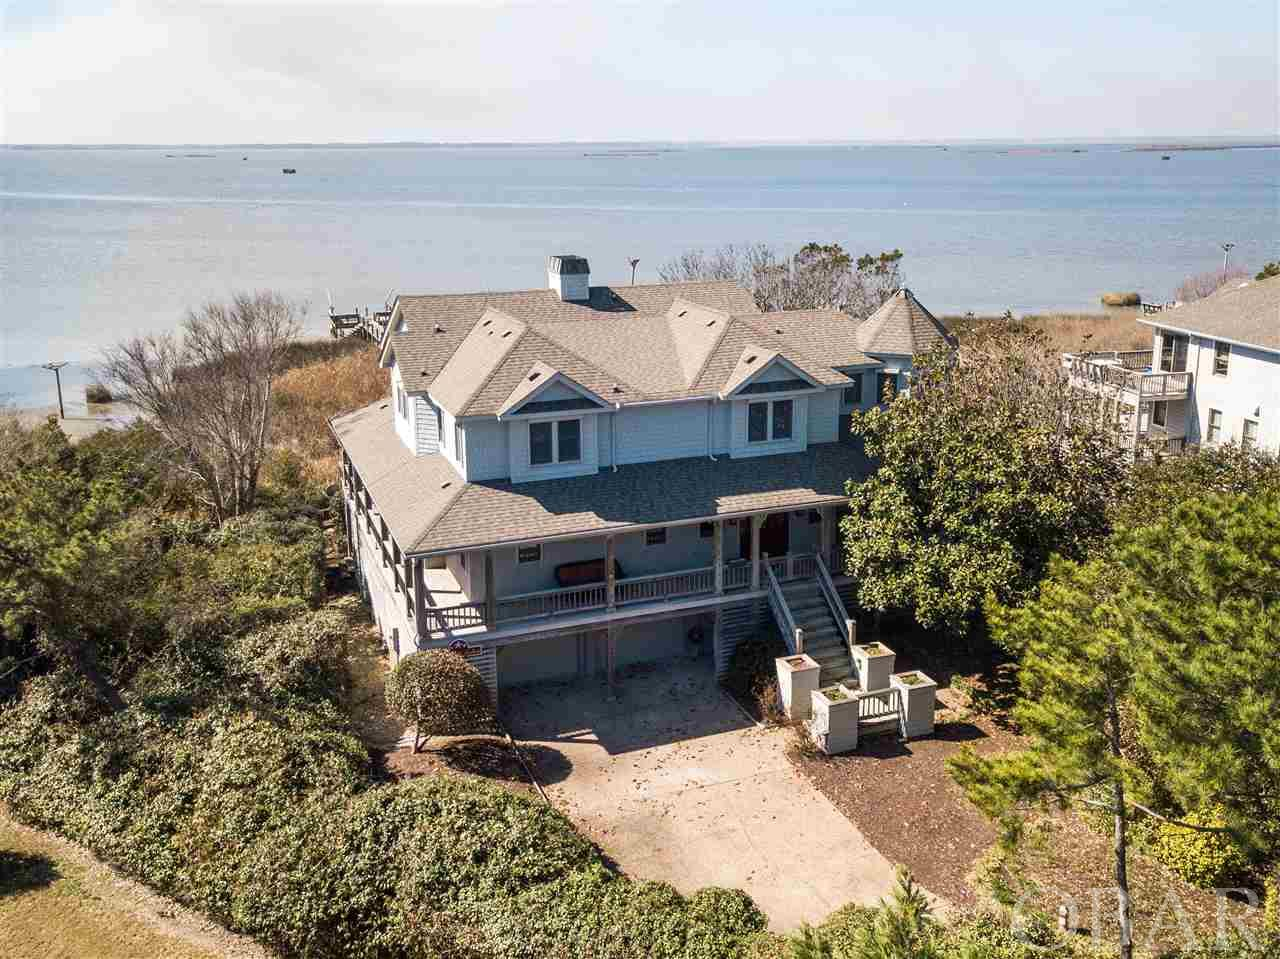 106 Gannet Cove,Duck,NC 27949,4 Bedrooms Bedrooms,4 BathroomsBathrooms,Residential,Gannet Cove,99505